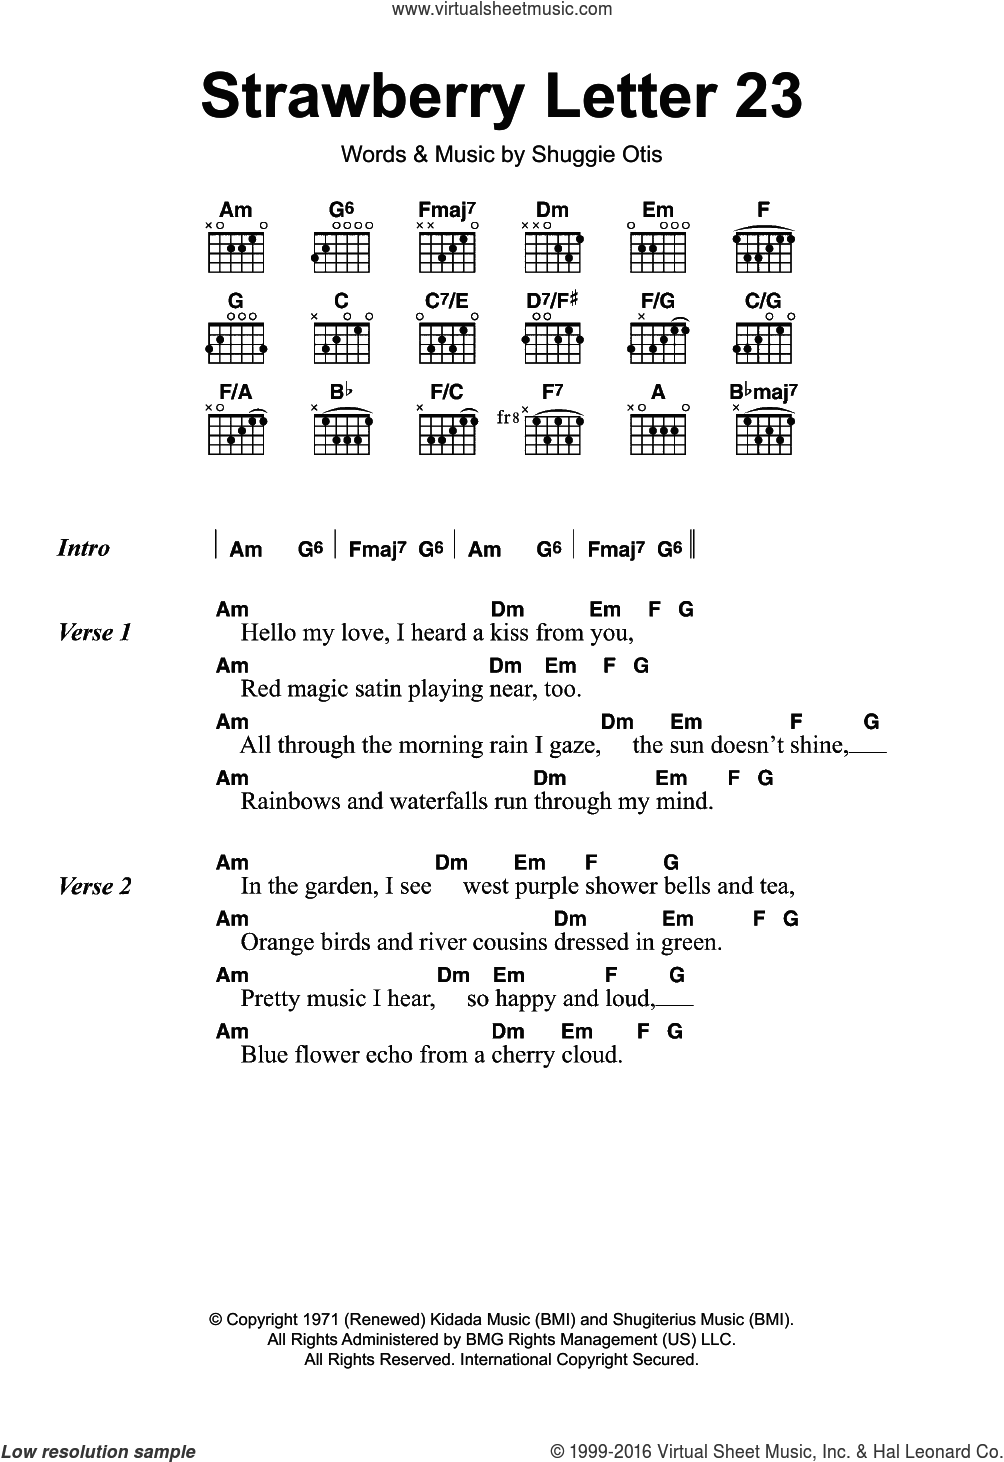 Strawberry Letter 23 sheet music for guitar (chords) by The Brothers Johnson and Shuggie Otis, intermediate skill level